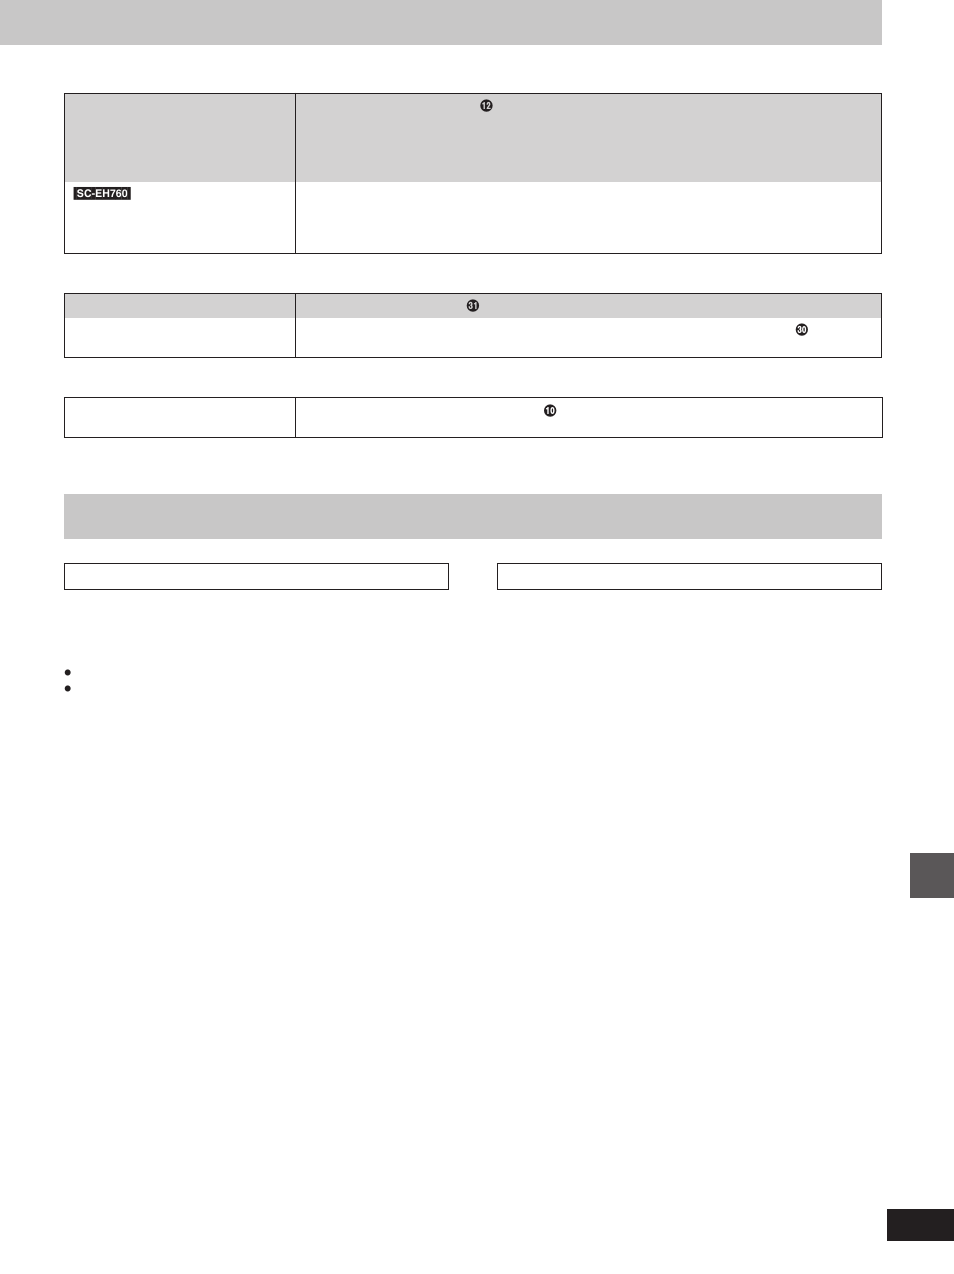 Maintenance | Technics SC-EH760 User Manual | Page 43 / 44